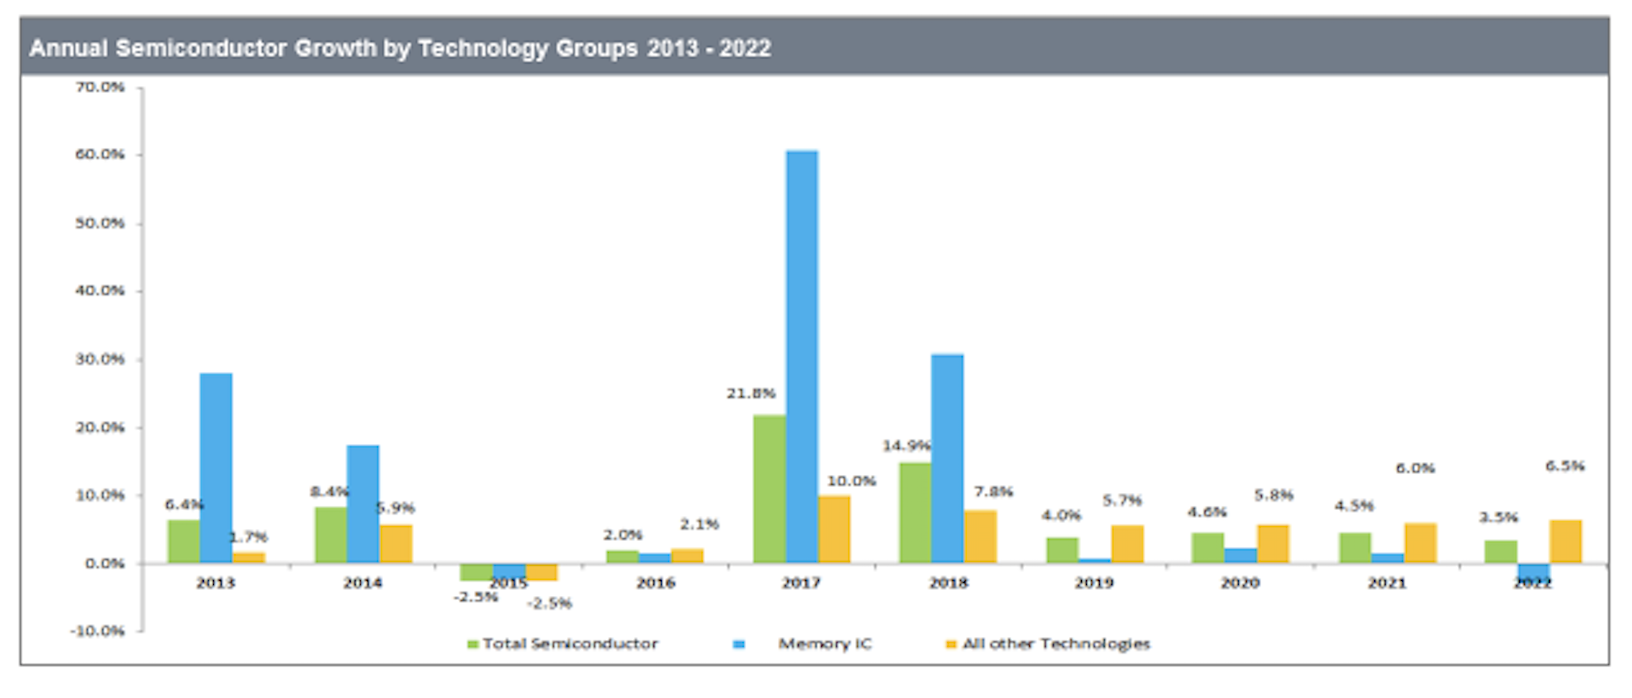 Semiconductor Engineering - Mixed Outlook For Semi Biz